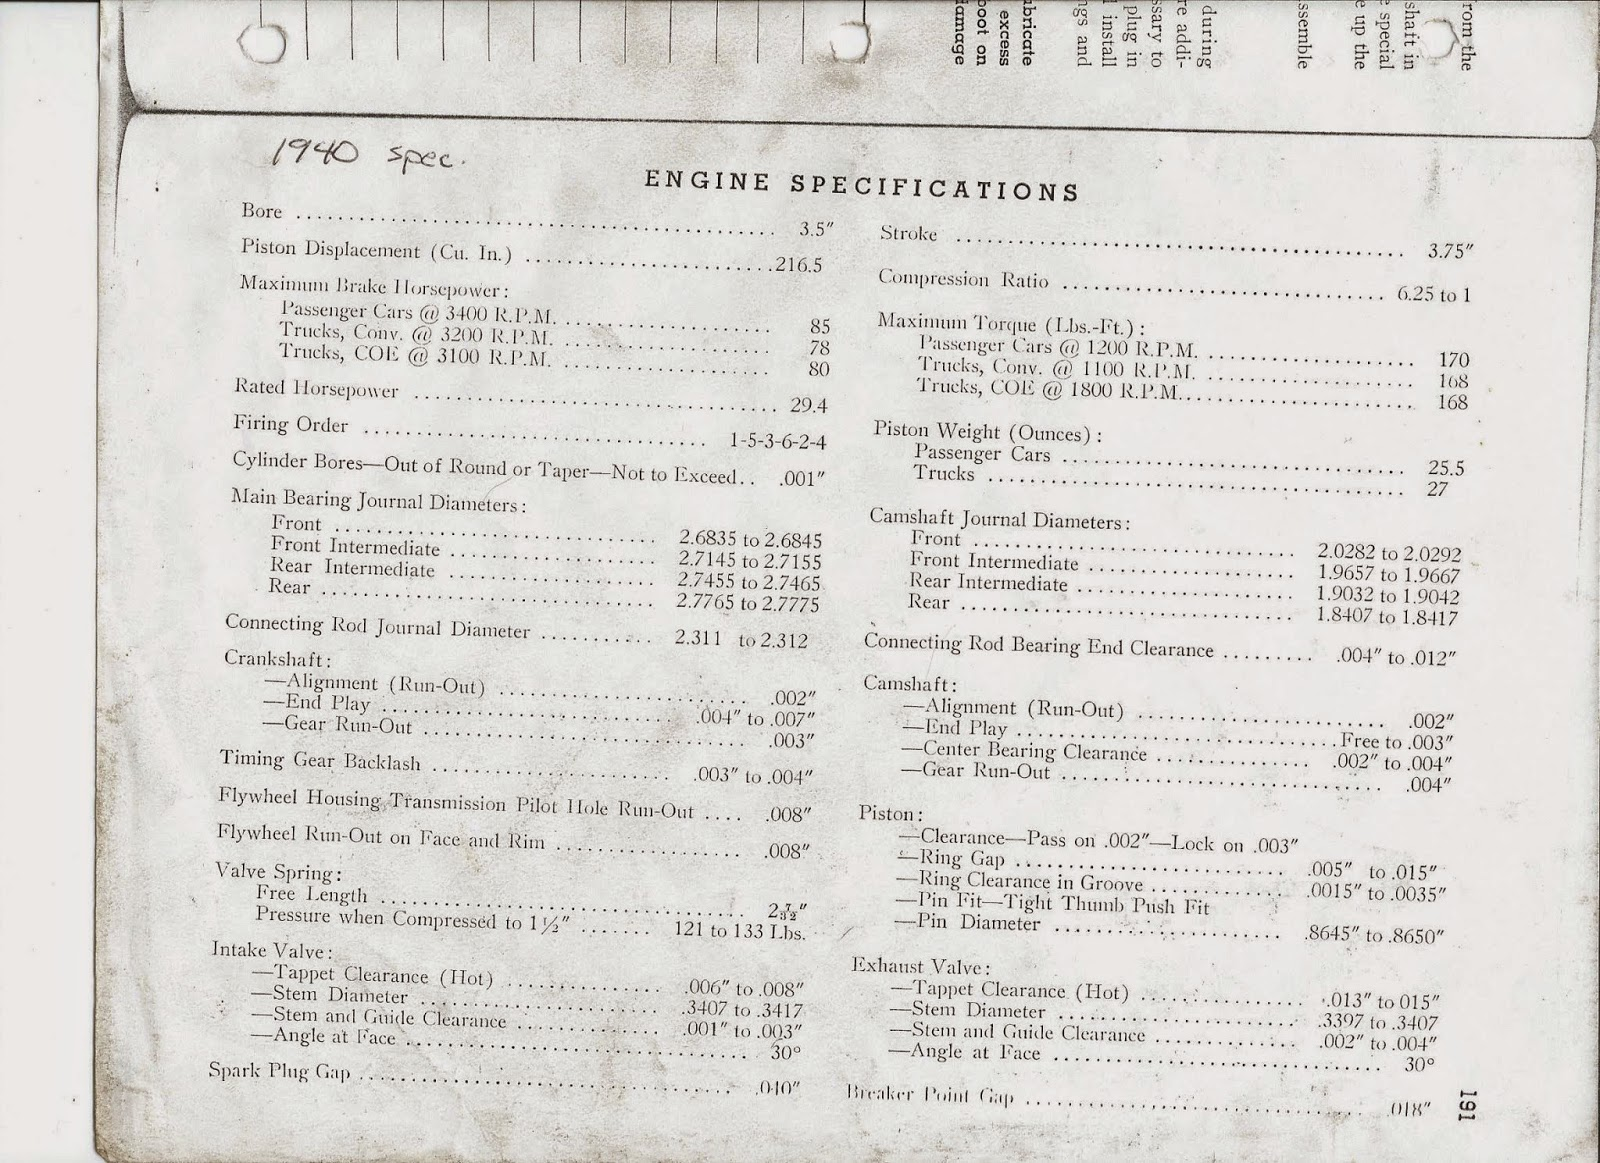 Scan on 1955 235 Chevy Engine Specs